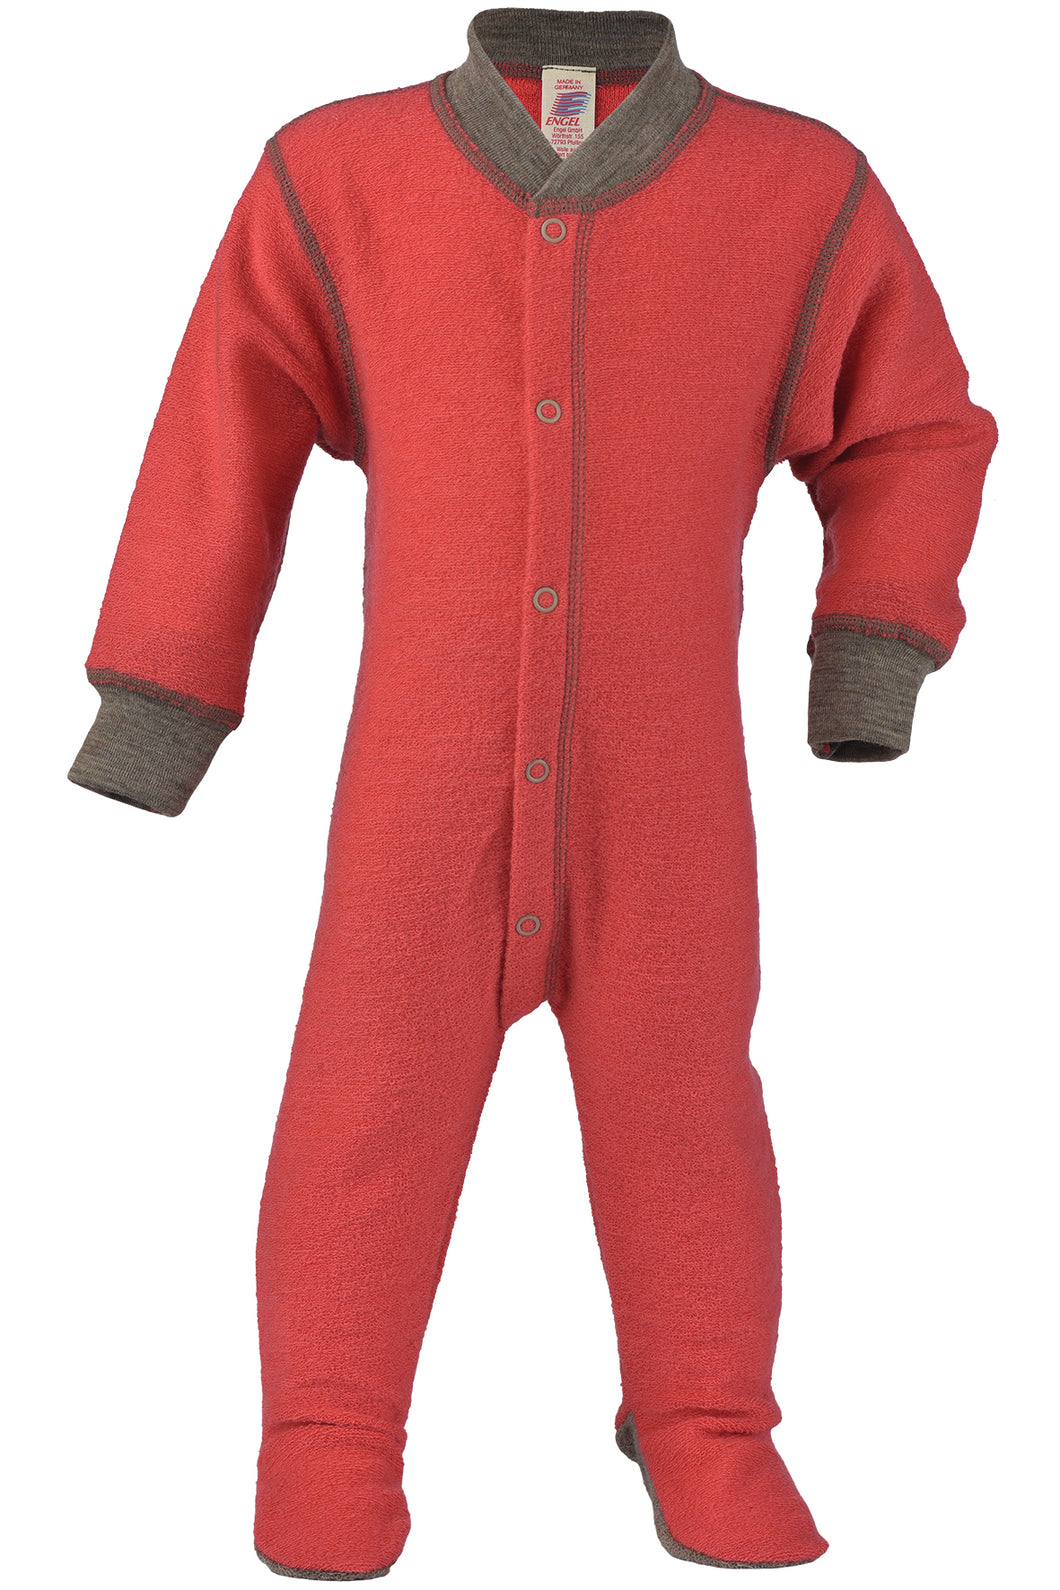 Engel Baby/Child Sleeper, Wool Terry